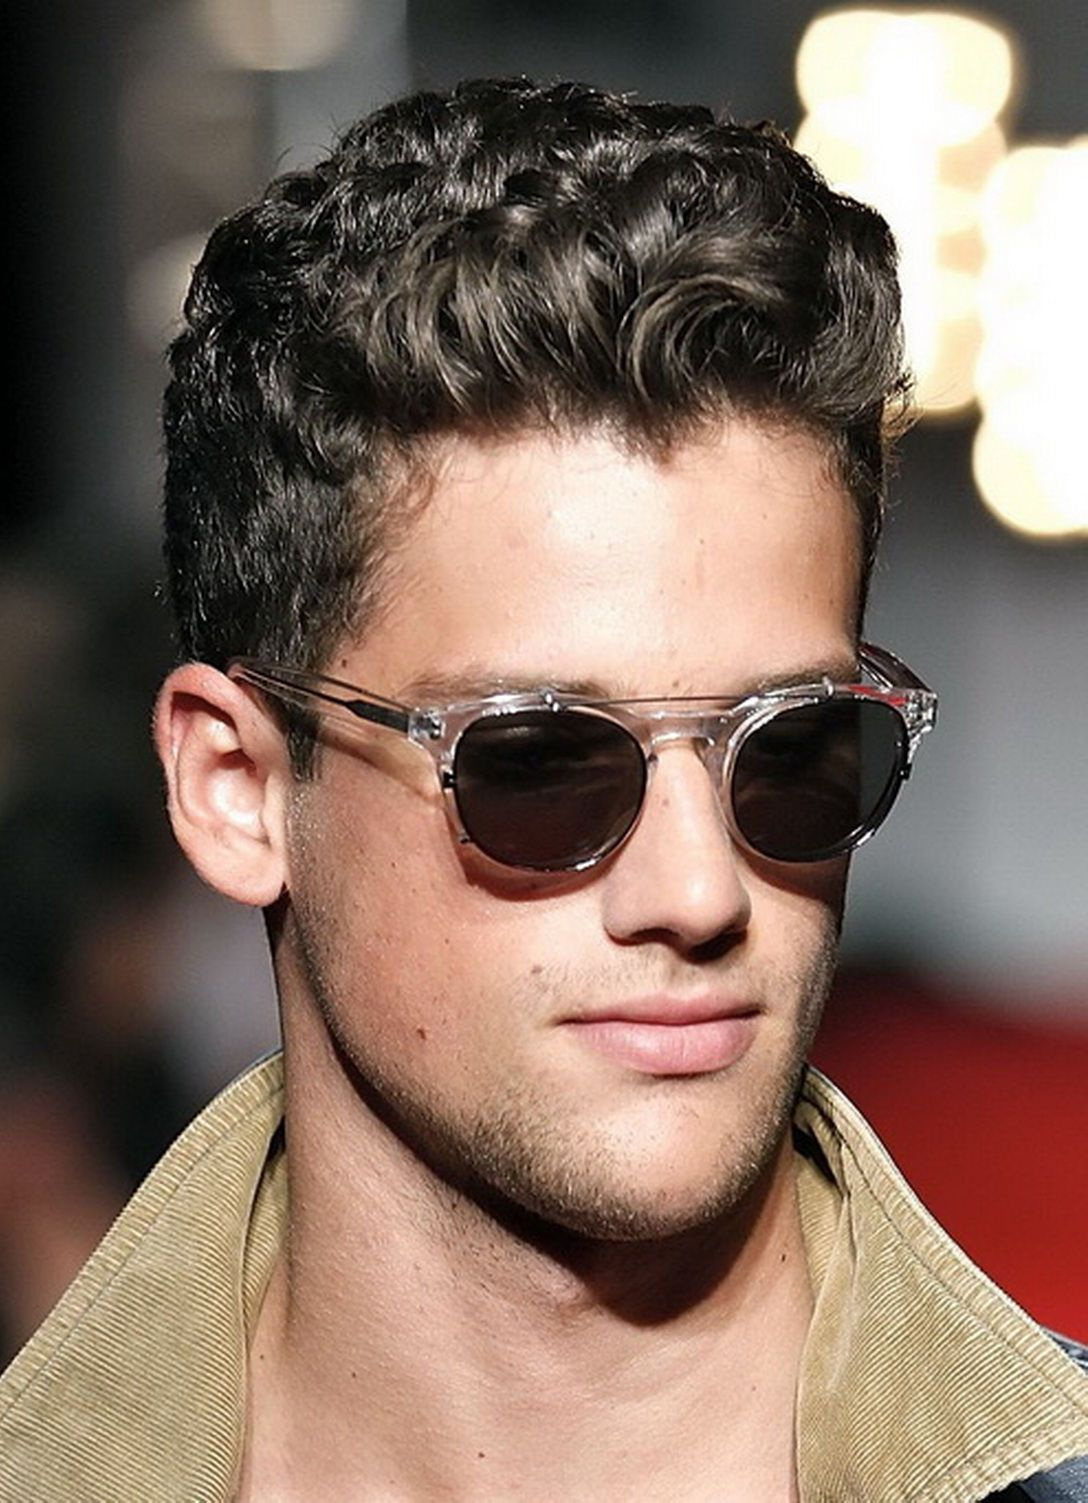 Short Hair Hairstyles For Men With Curly Hair Curly Hair Men Wavy Hair Men Mens Short Curly Hairstyles